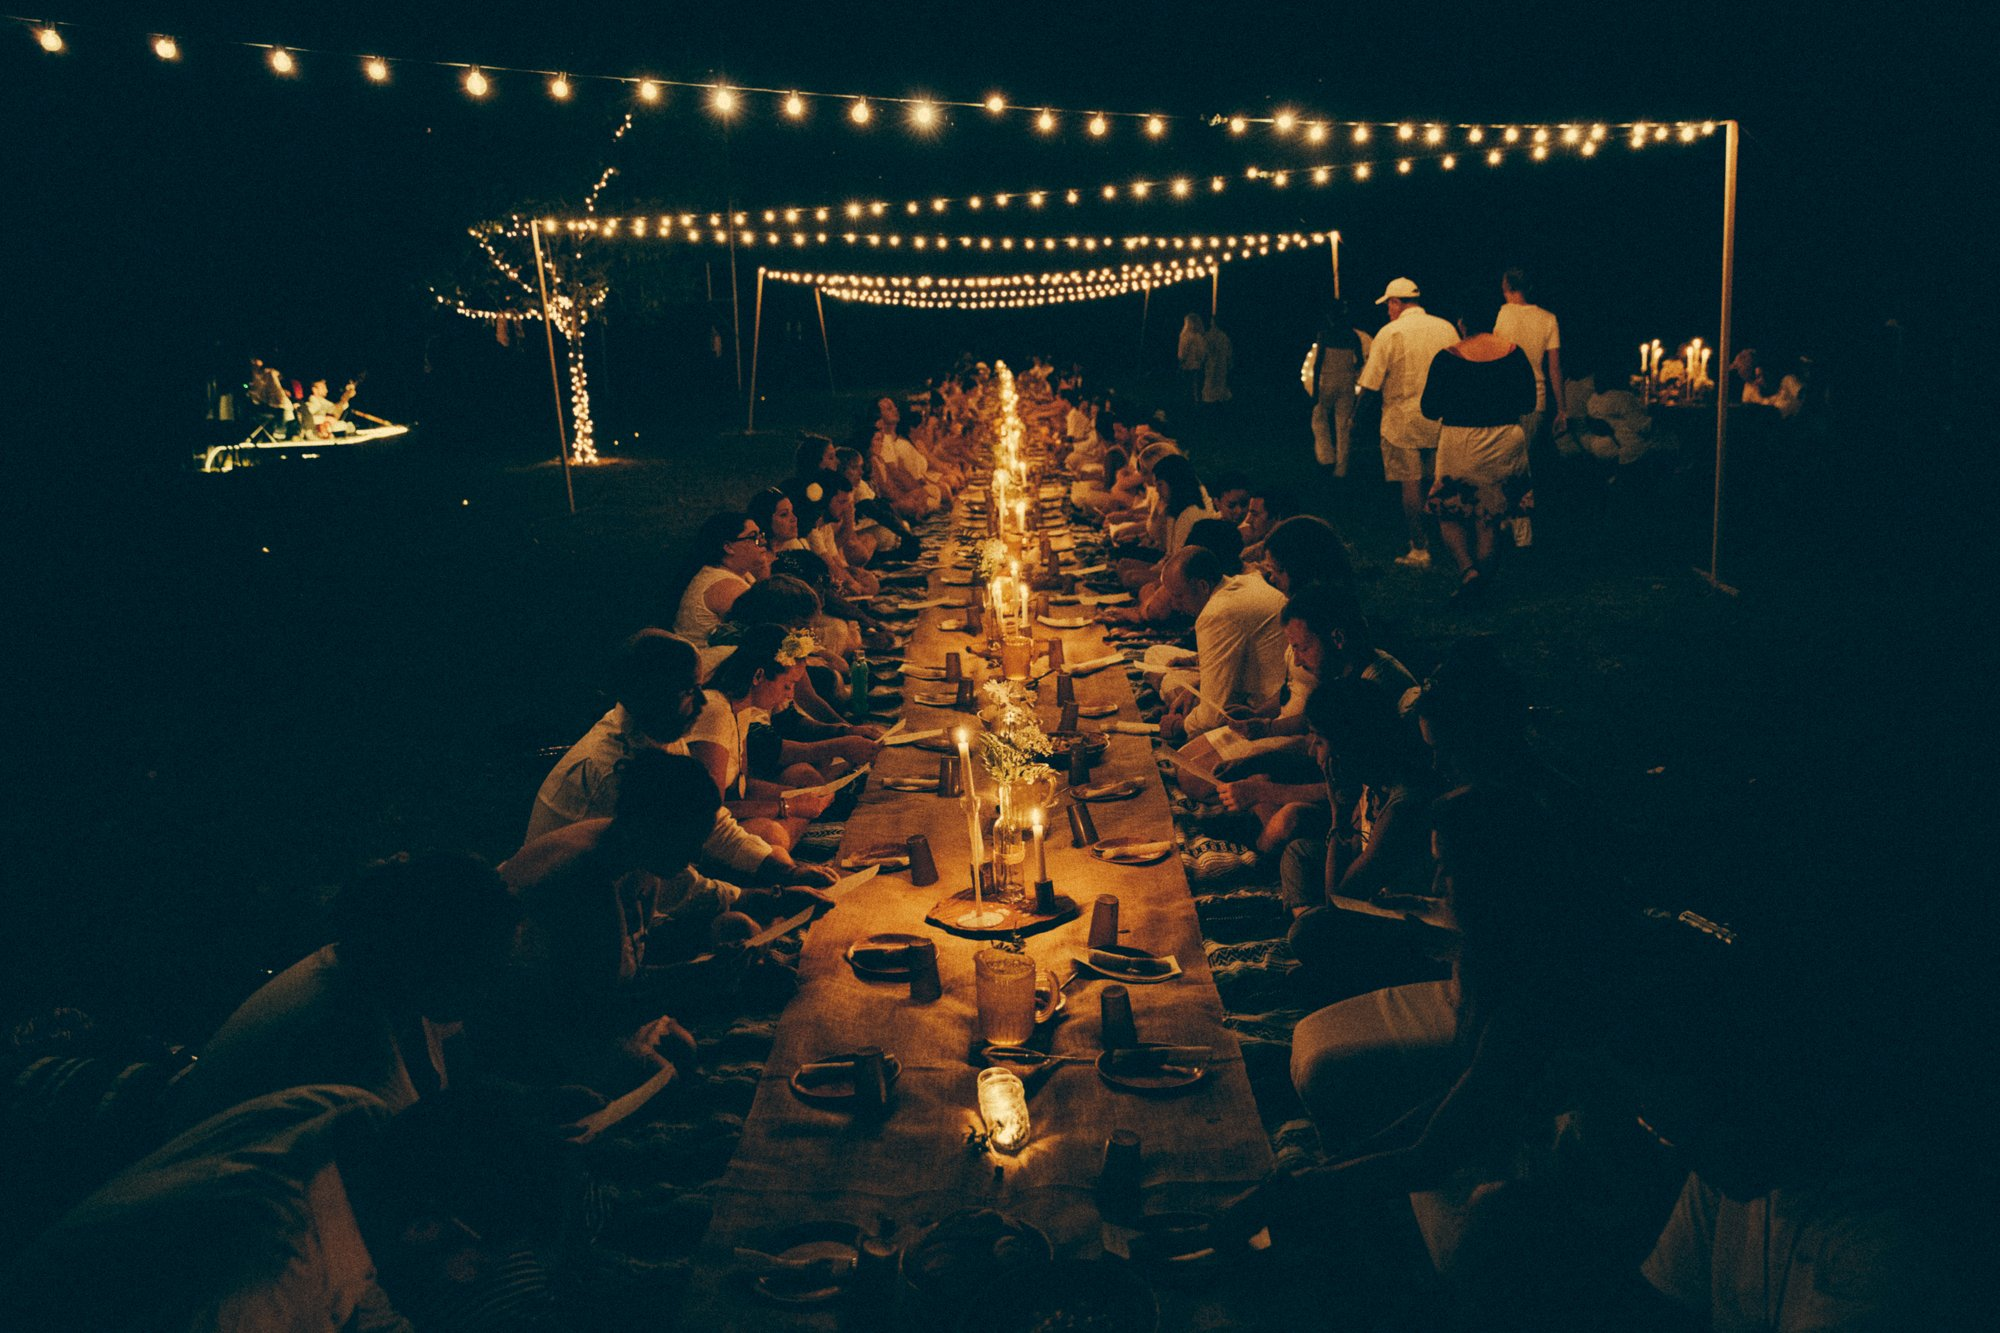 Campers gathered to eat at a long candlelit table for Silent Dinner at Camp Grounded